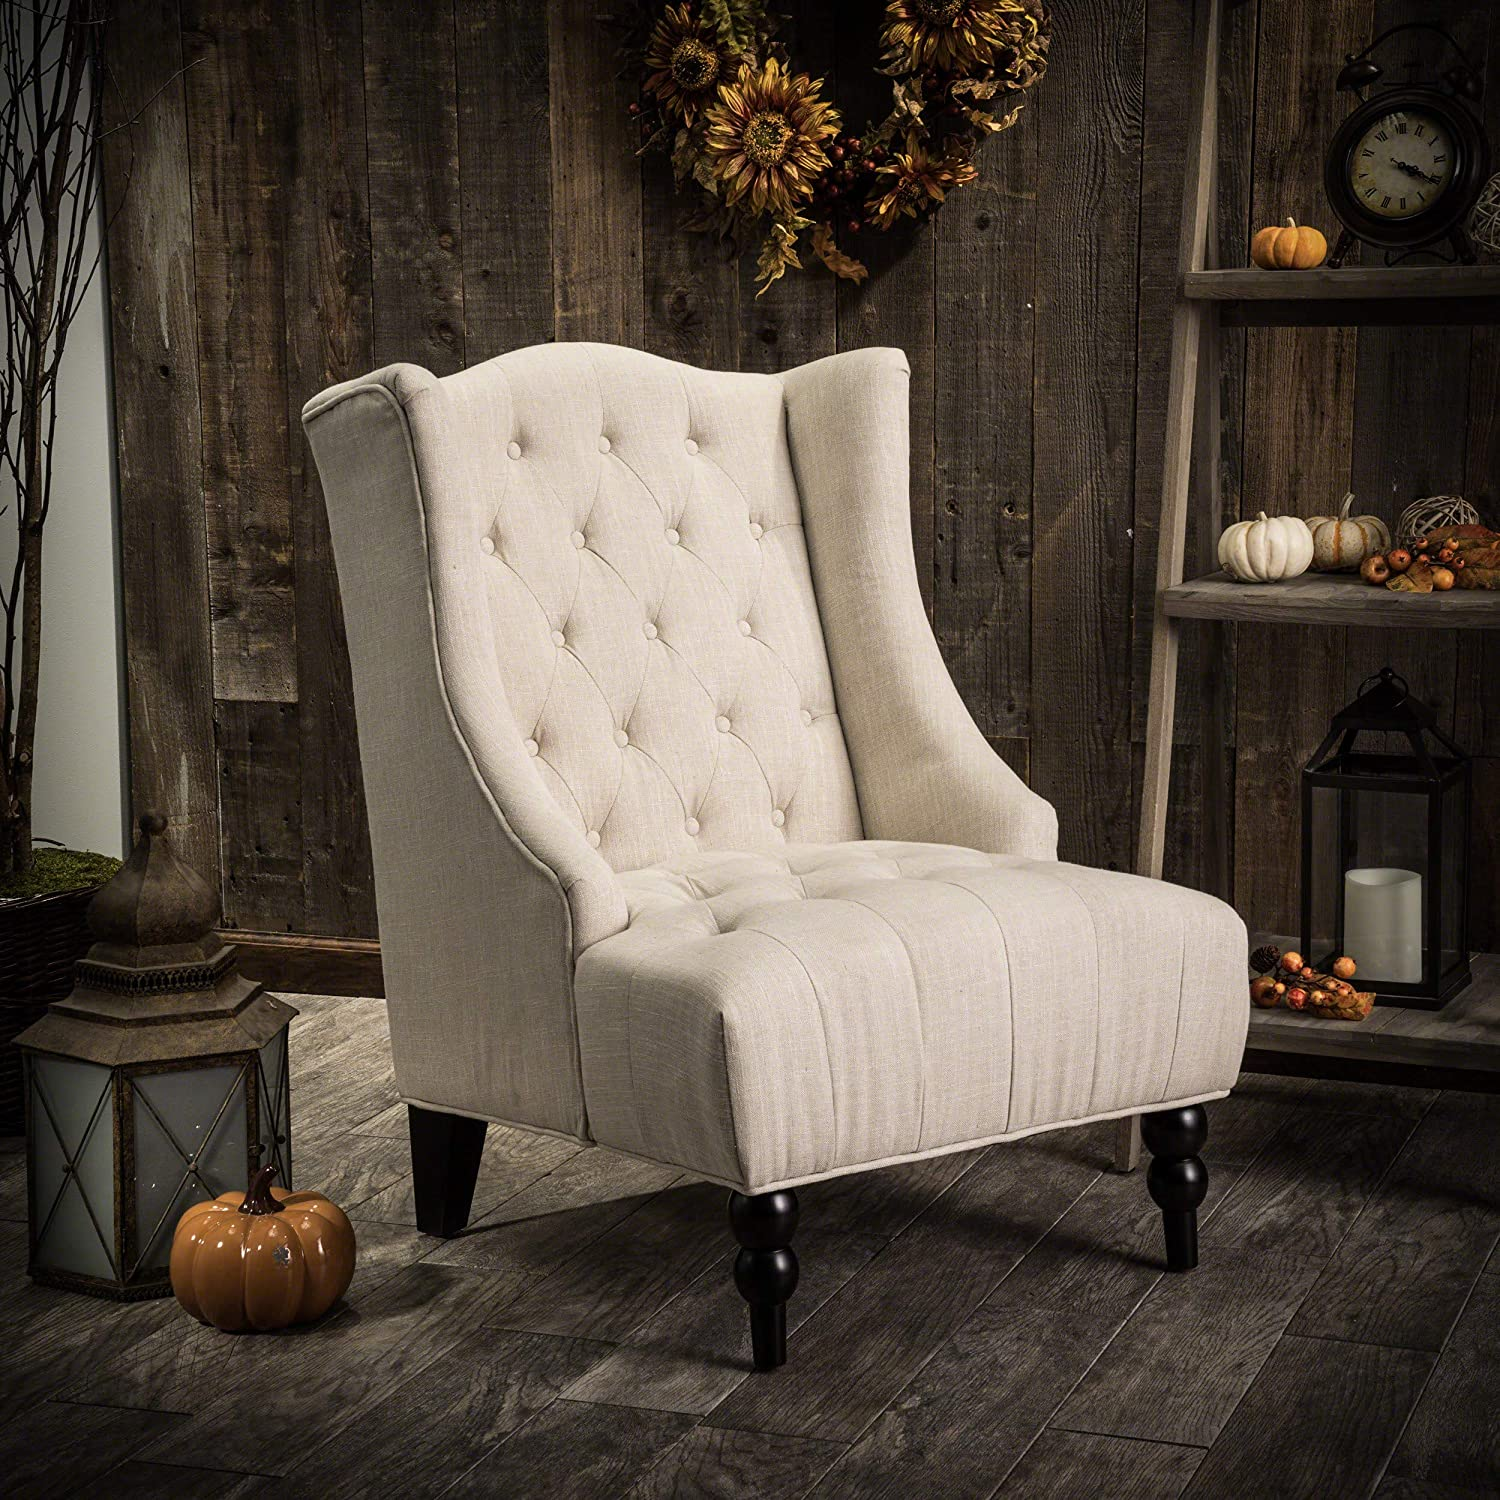 Top 6 Best Cheap Accent Chairs Under $100 & $200 (2021 Reviews) 6